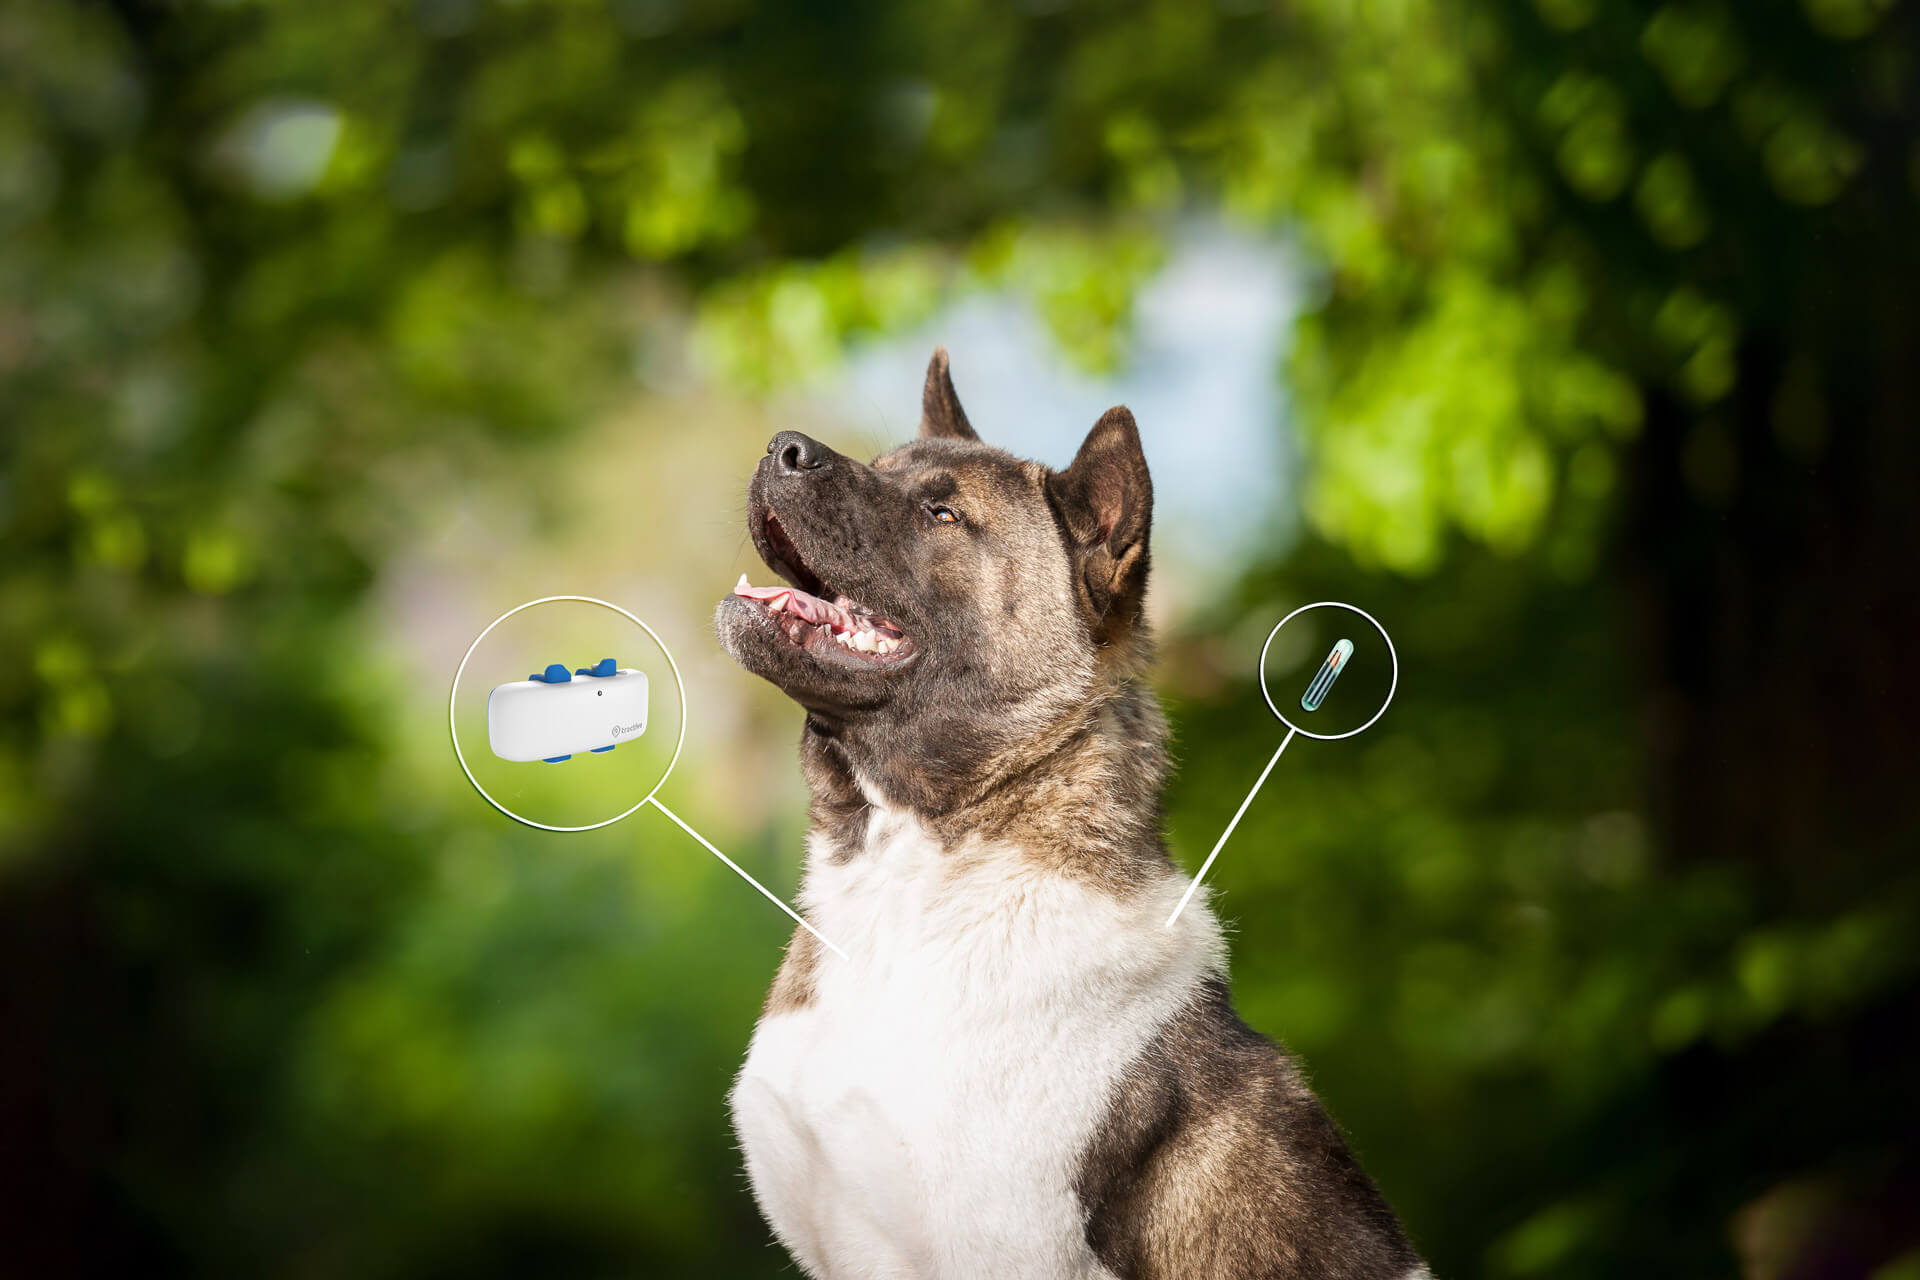 Dog microchip vs GPS tracker: What's the difference?